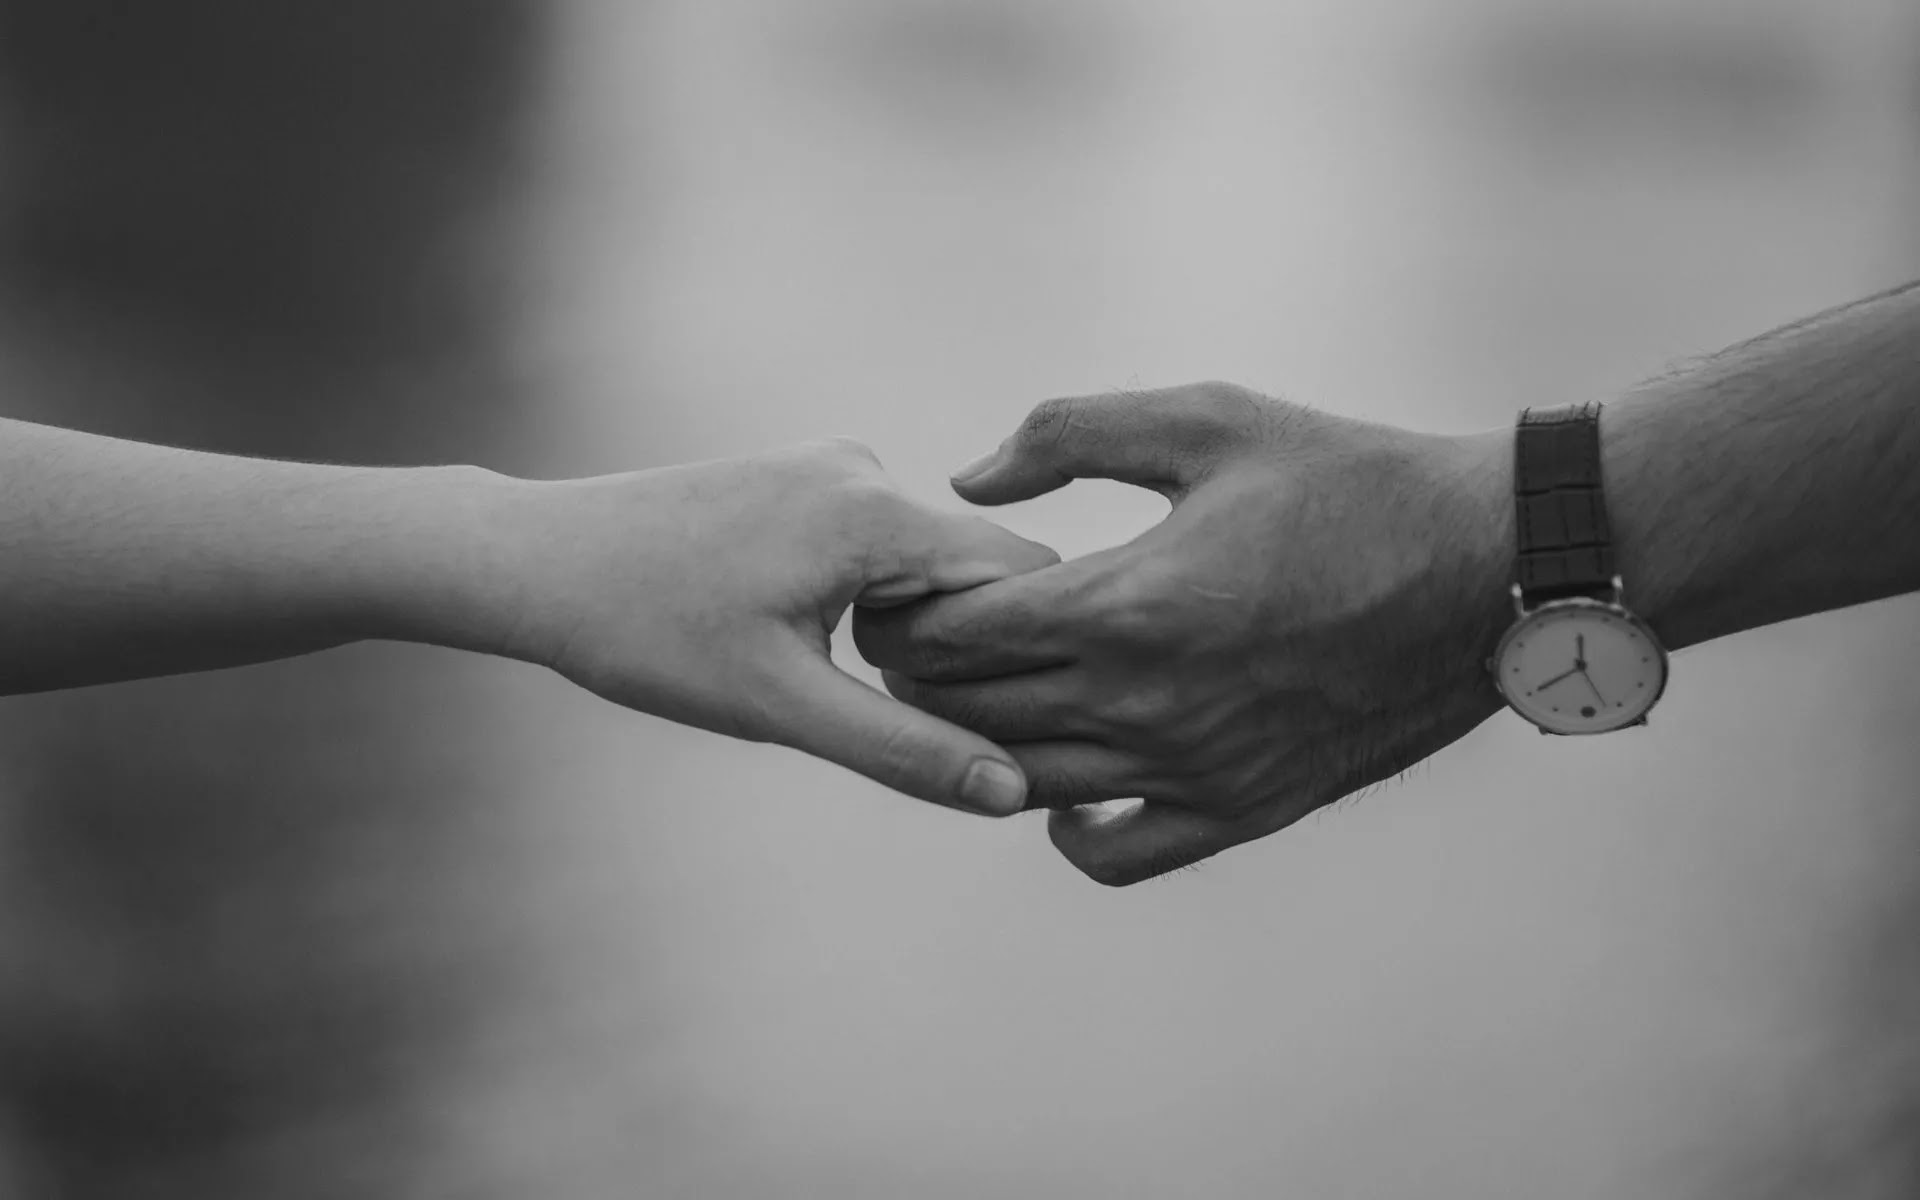 love couple hand in hand image black and white